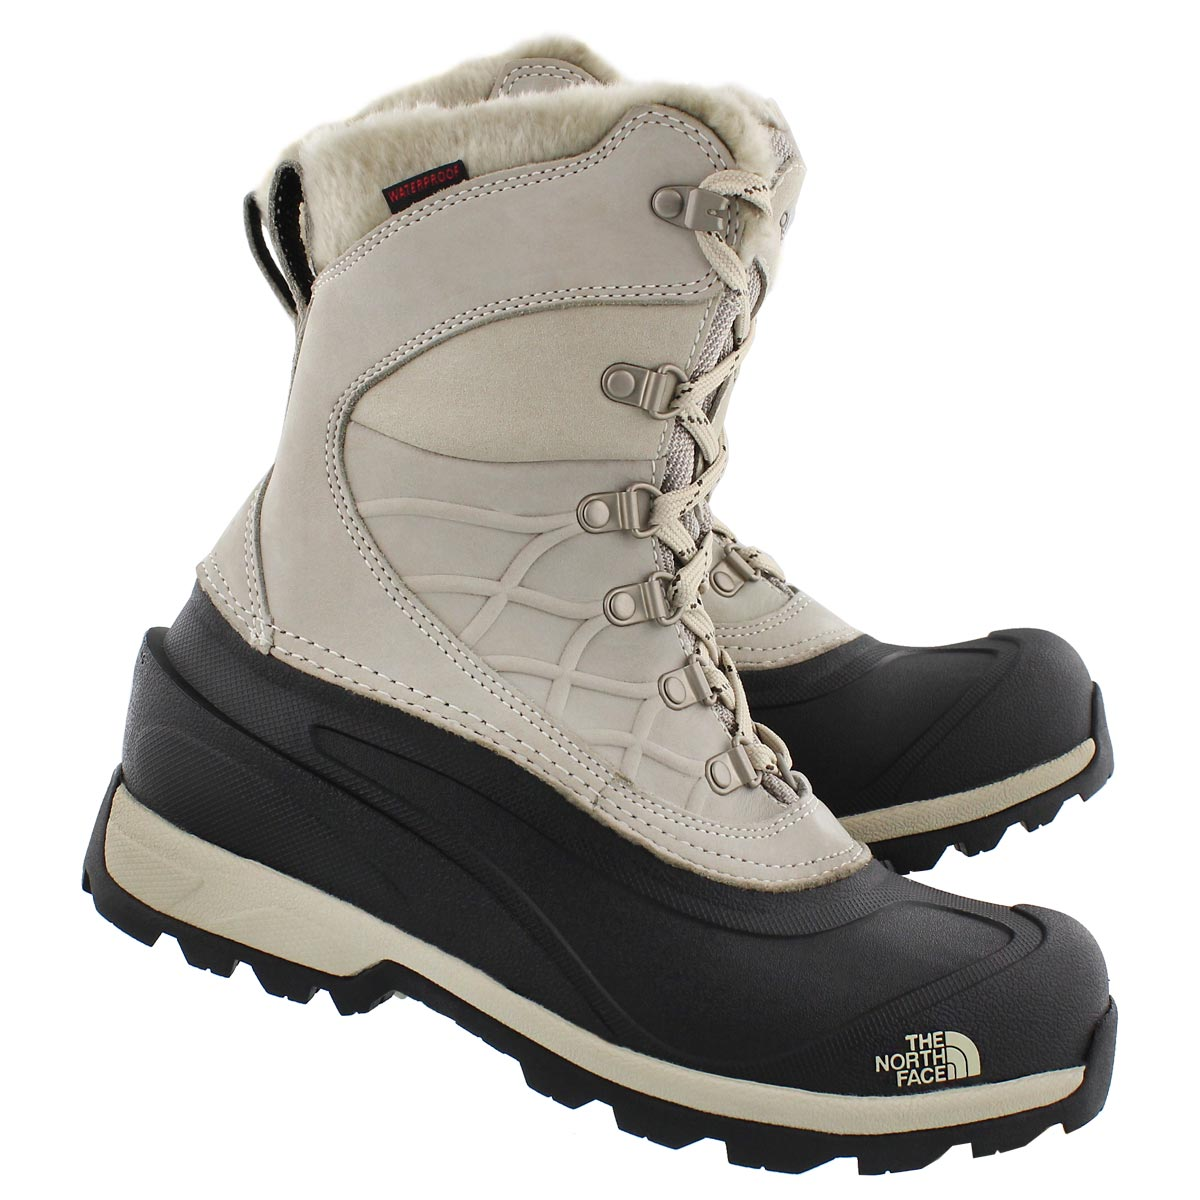 Lds Chilkat 400 taupe wtpf wntr boot